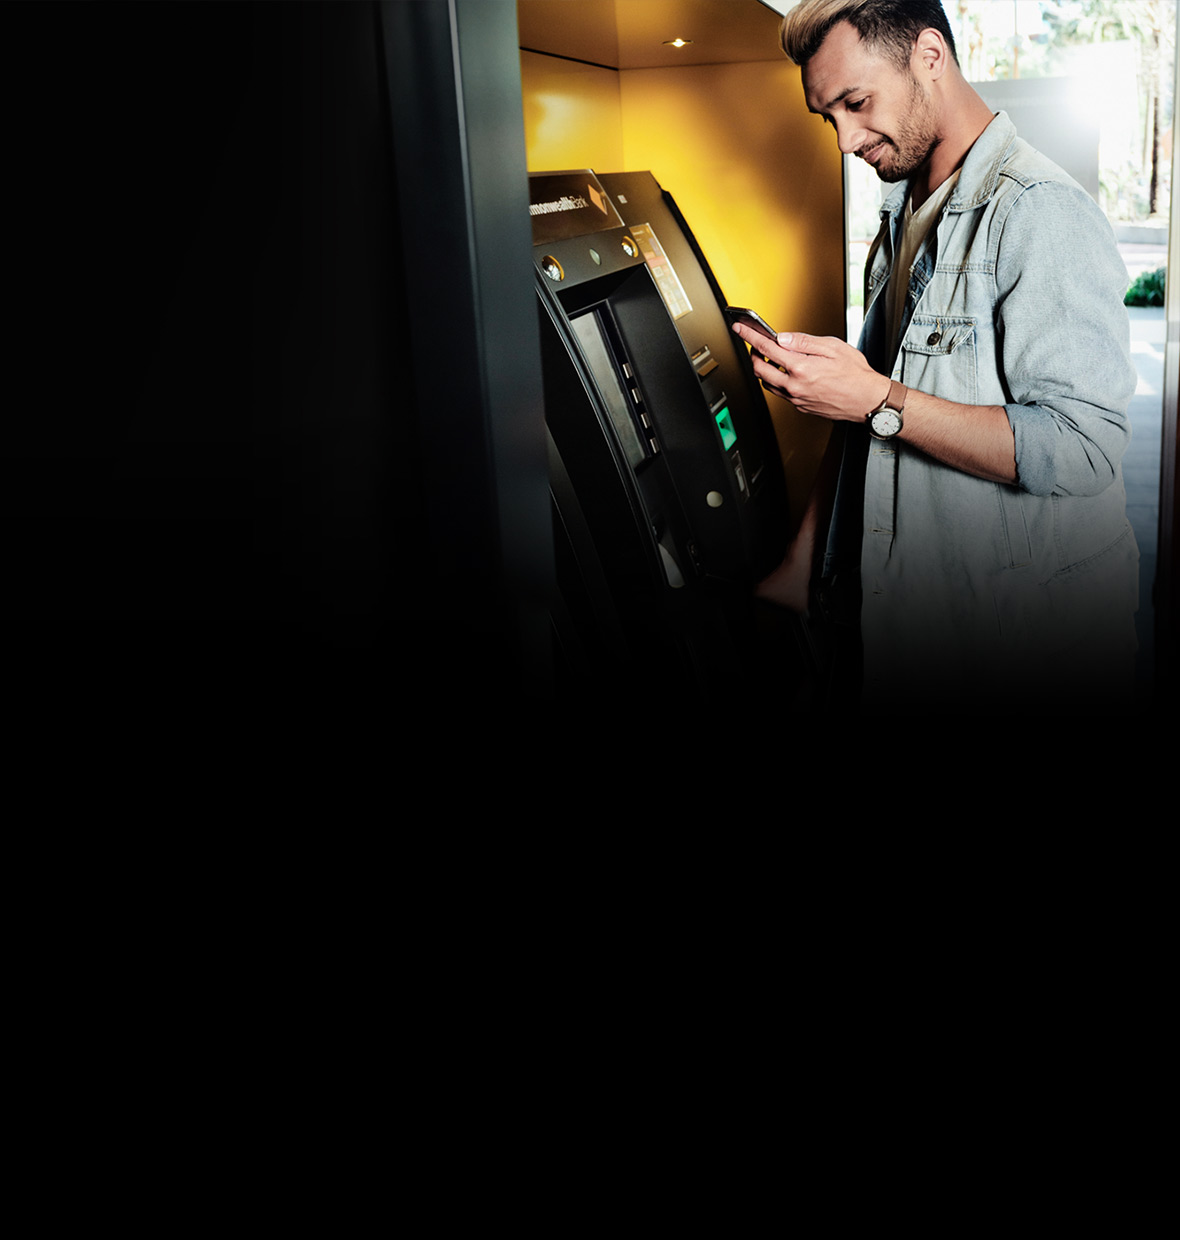 Image of person at a CommBank ATM, with mobile phone in hand